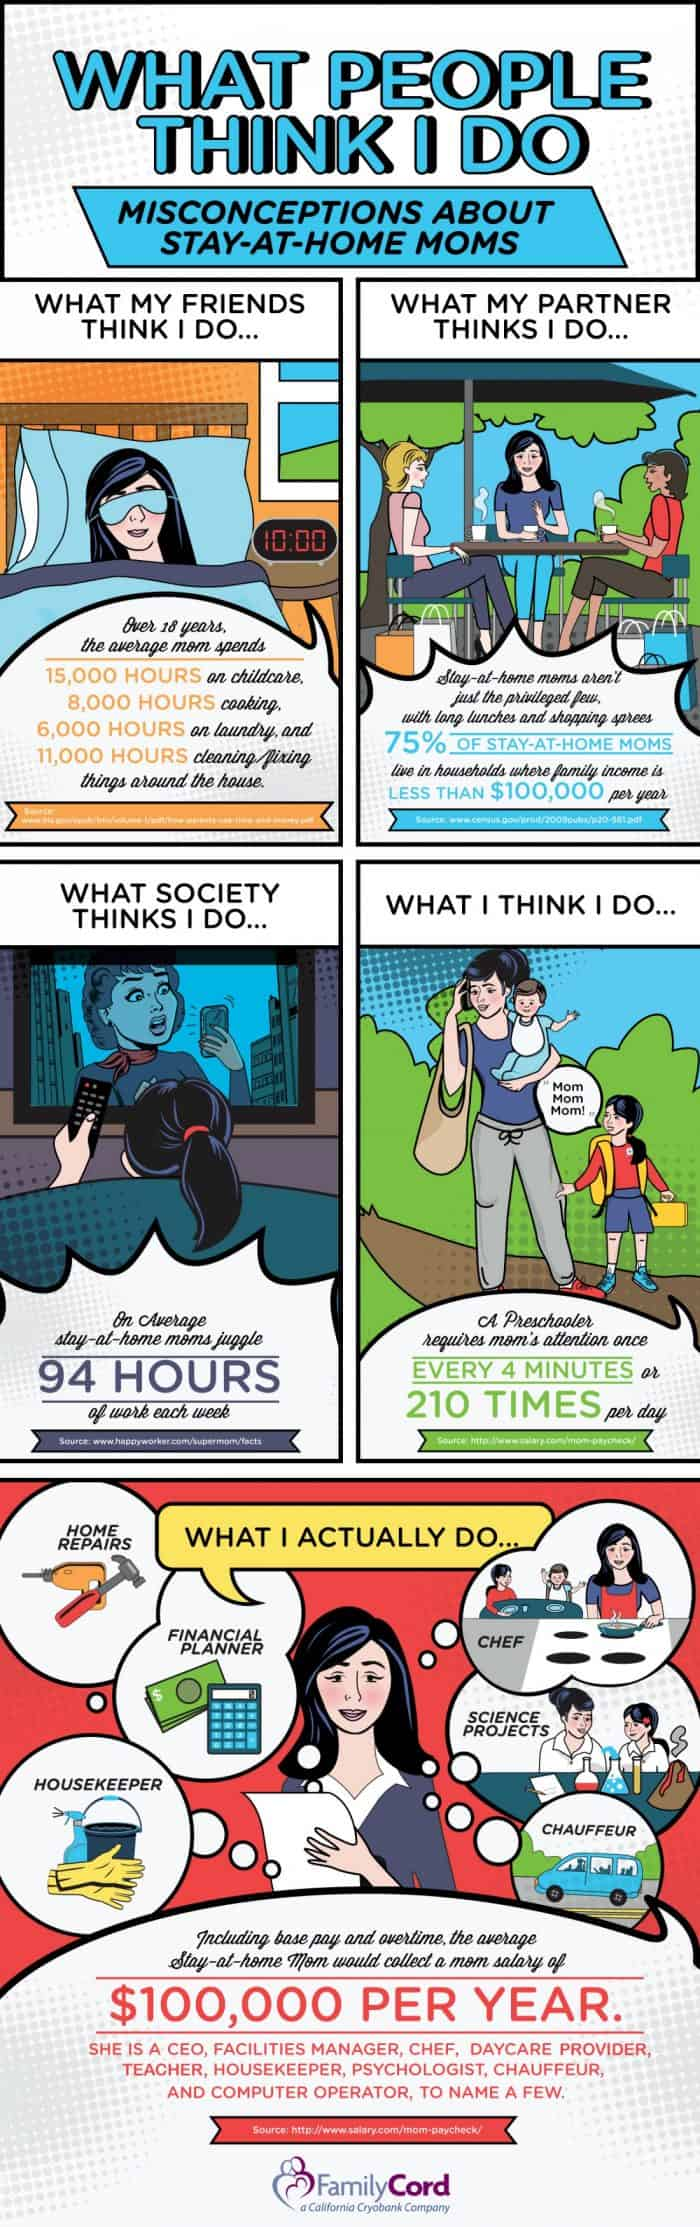 Misconceptions About Stay-At-Home Parents according to society infographic